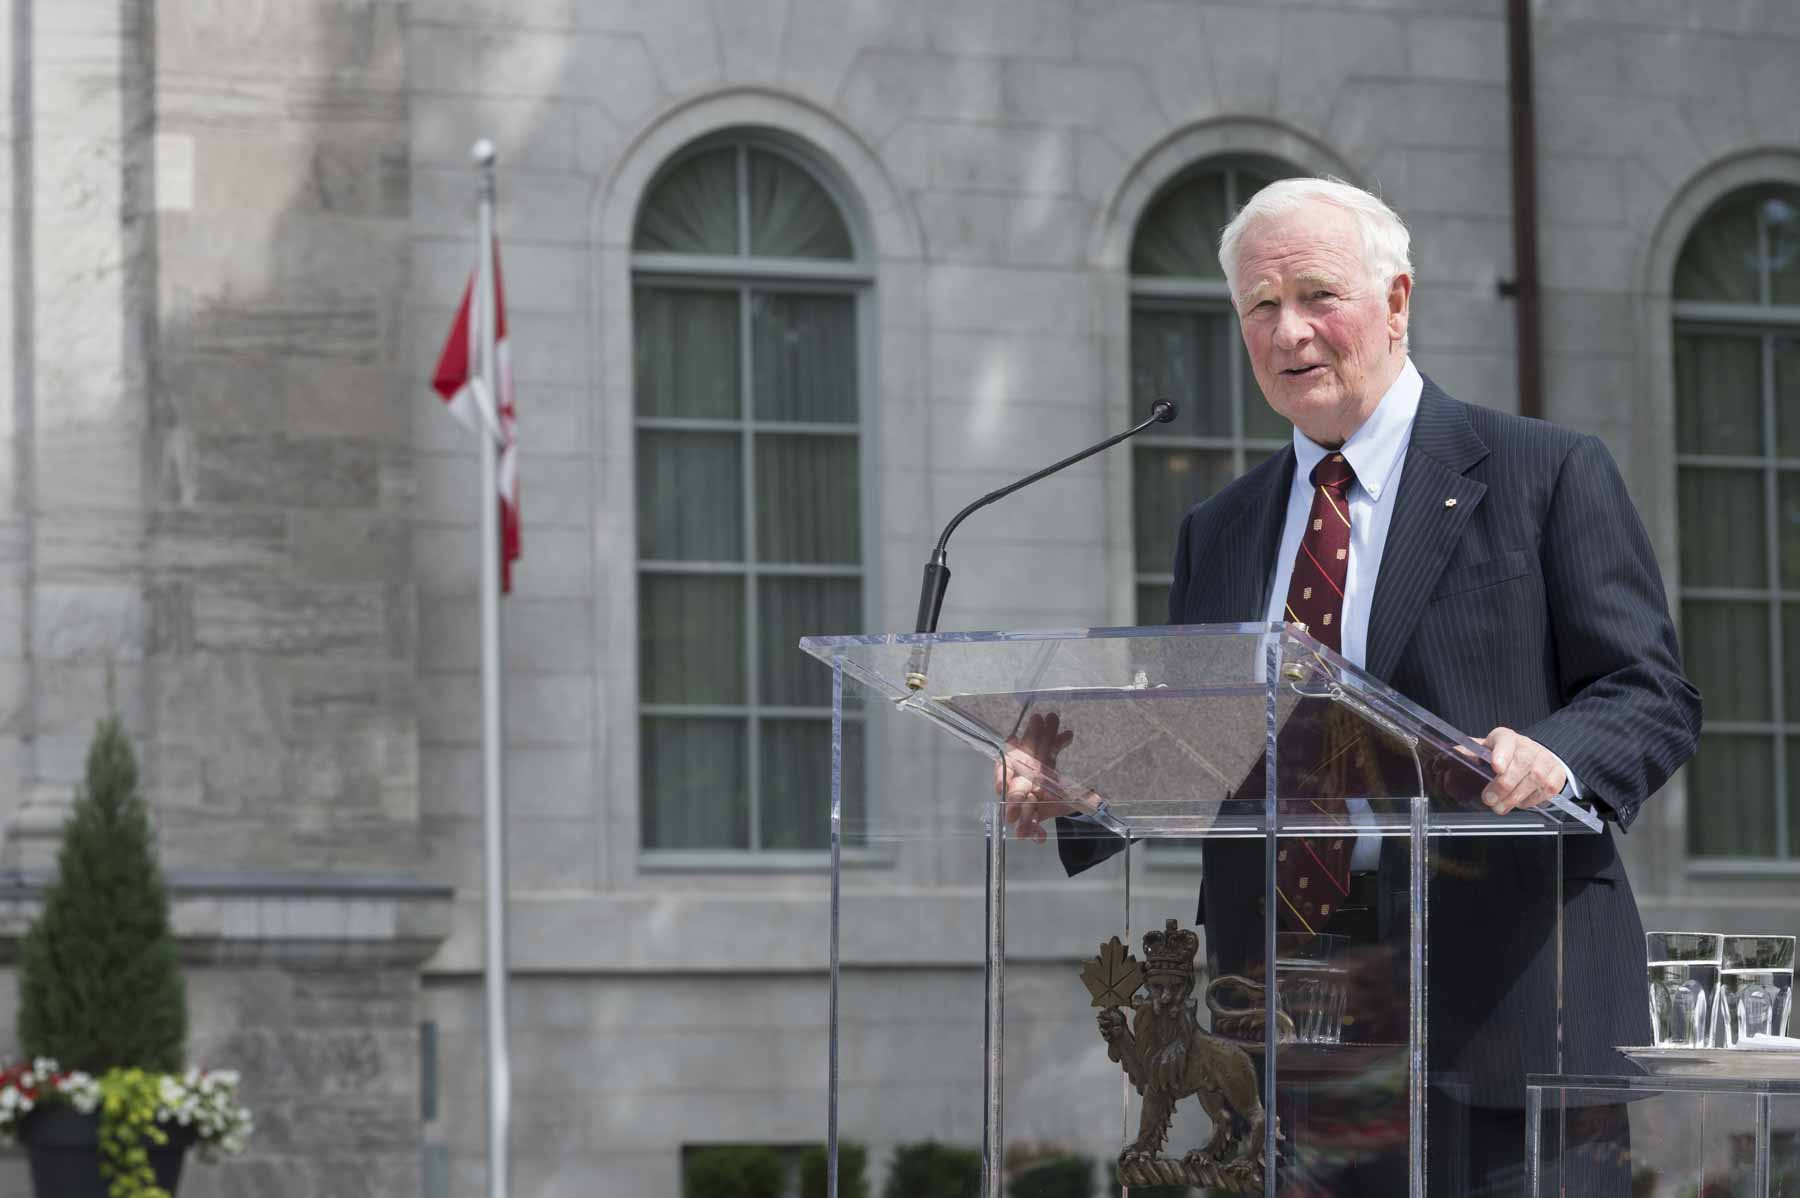 On June 19, 2017, His Excellency the Right Honourable David Johnston, Governor General of Canada, hosted a ceremony at Rideau Hall to inaugurate the newly renovated forecourt and to reopen and rededicate The Fountaine of Hope.